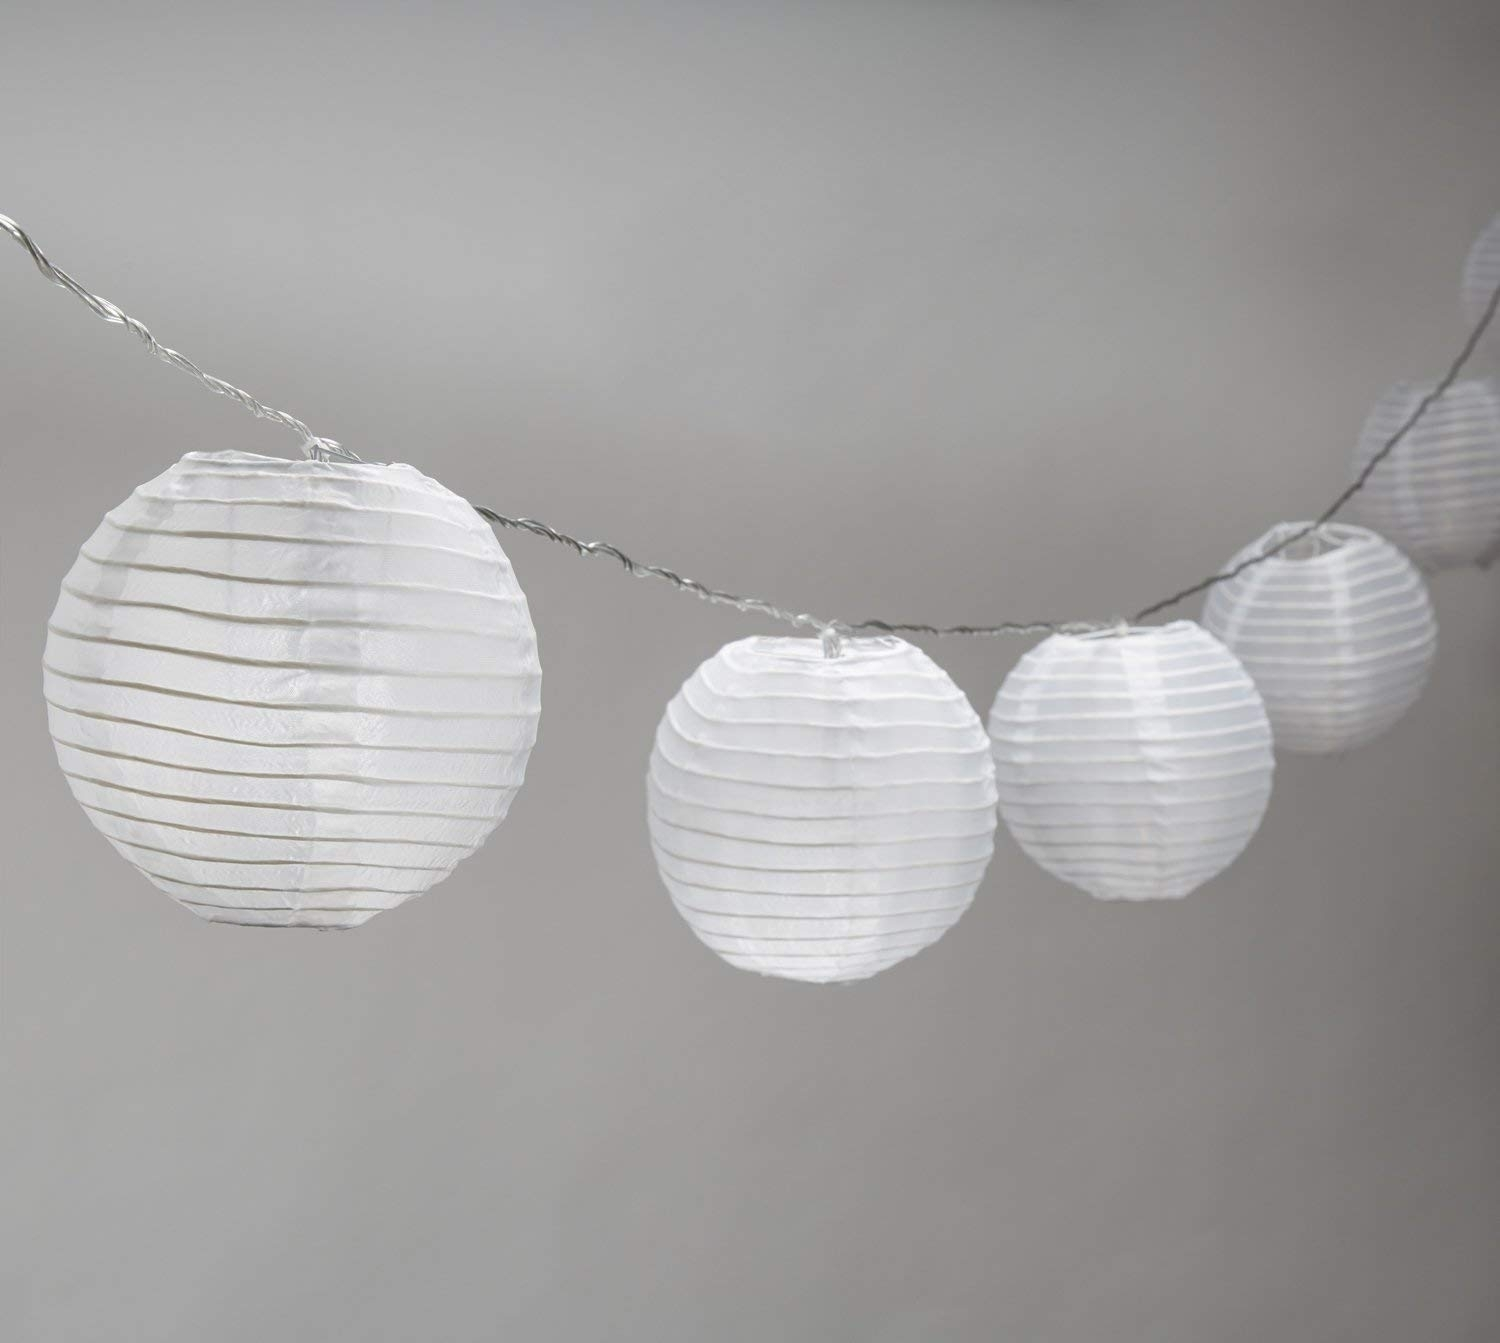 Amazon : Strand Of 10 Lantern String Lights, Connectable, 8 with regard to Jumbo Outdoor Lanterns (Image 2 of 20)